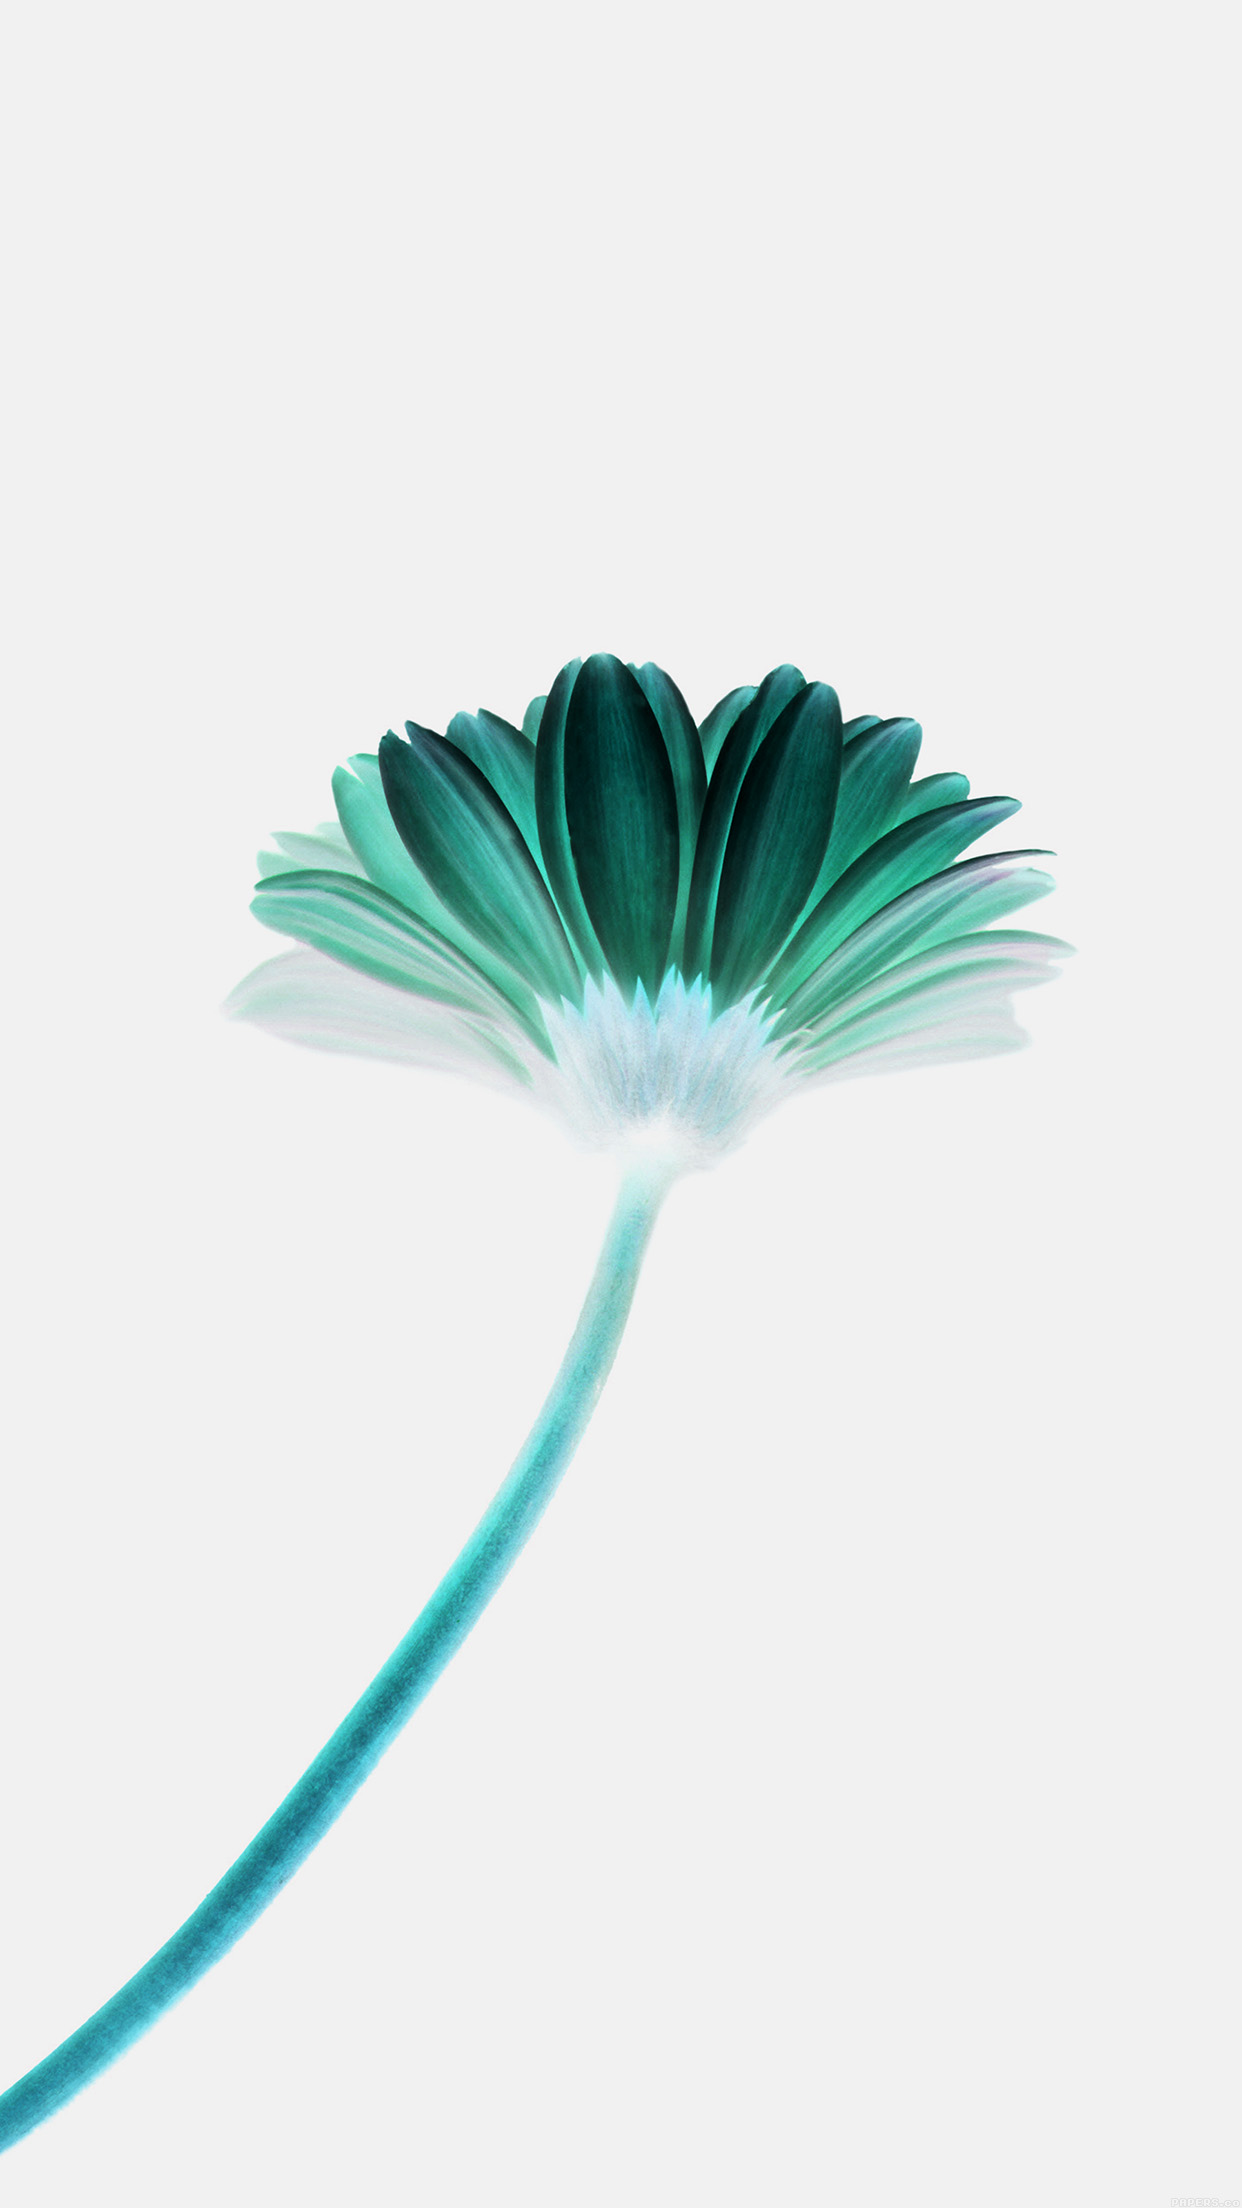 Lonely Flower White Green Simple Minimal Nature Android wallpaper